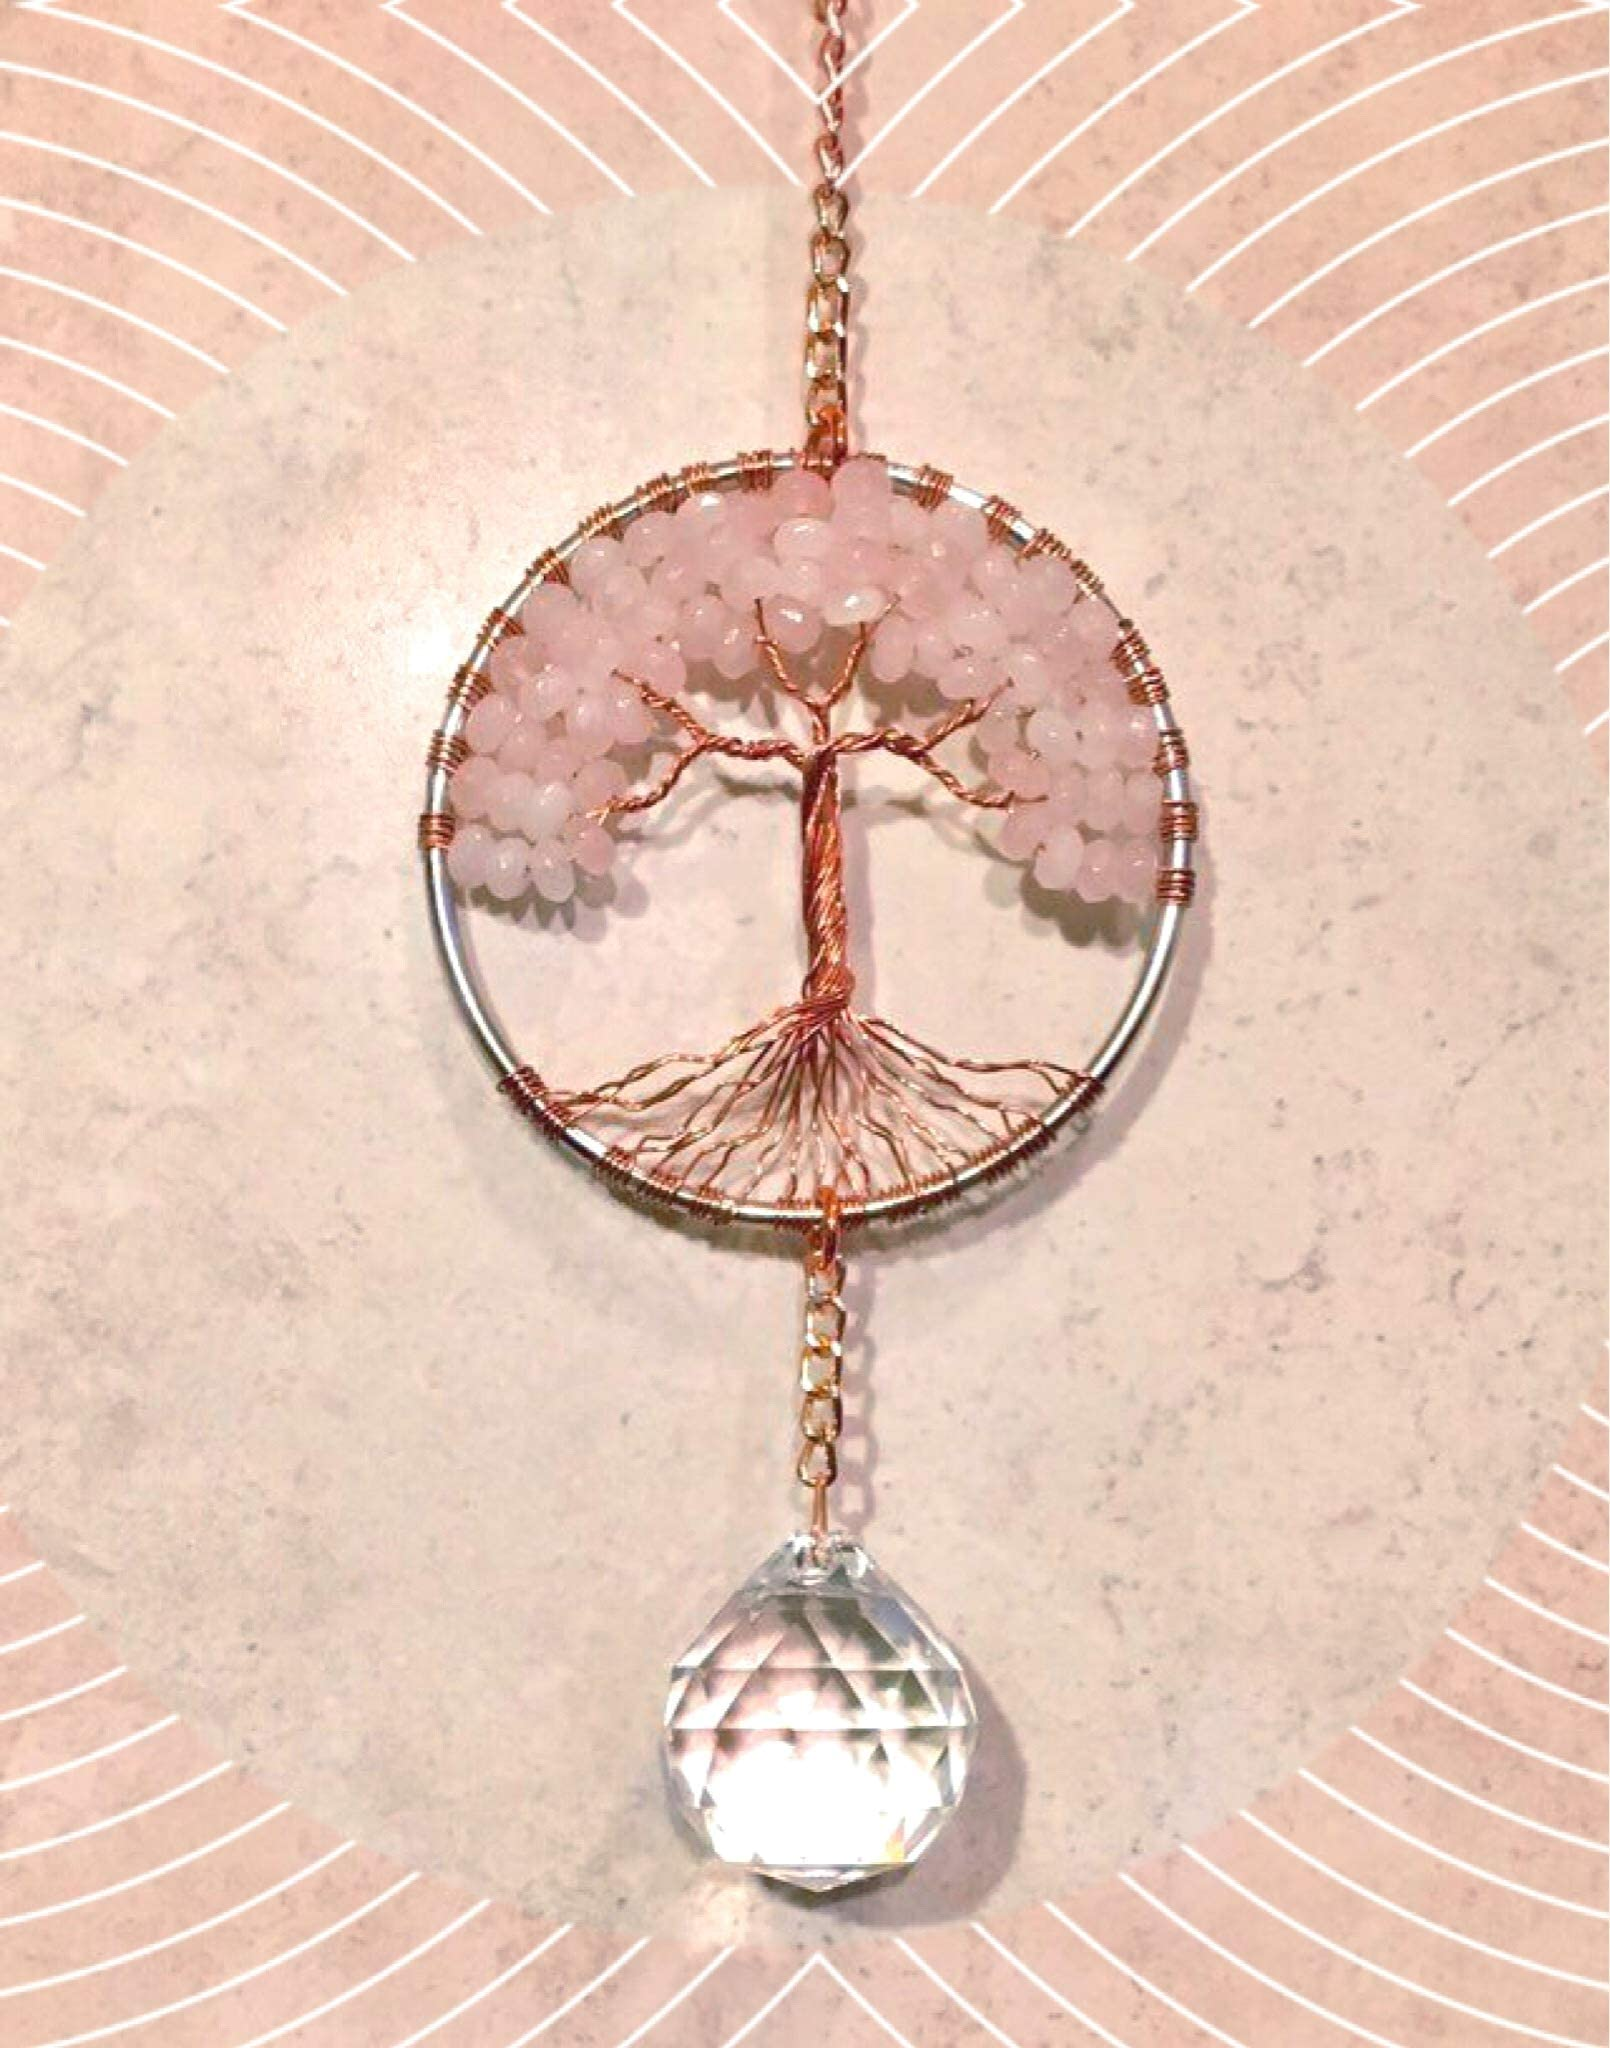 11 inch  Handmade   Copper wire  Tree of Life   One of a Kind  Original Sculpture  Unique gift  Sun catcher